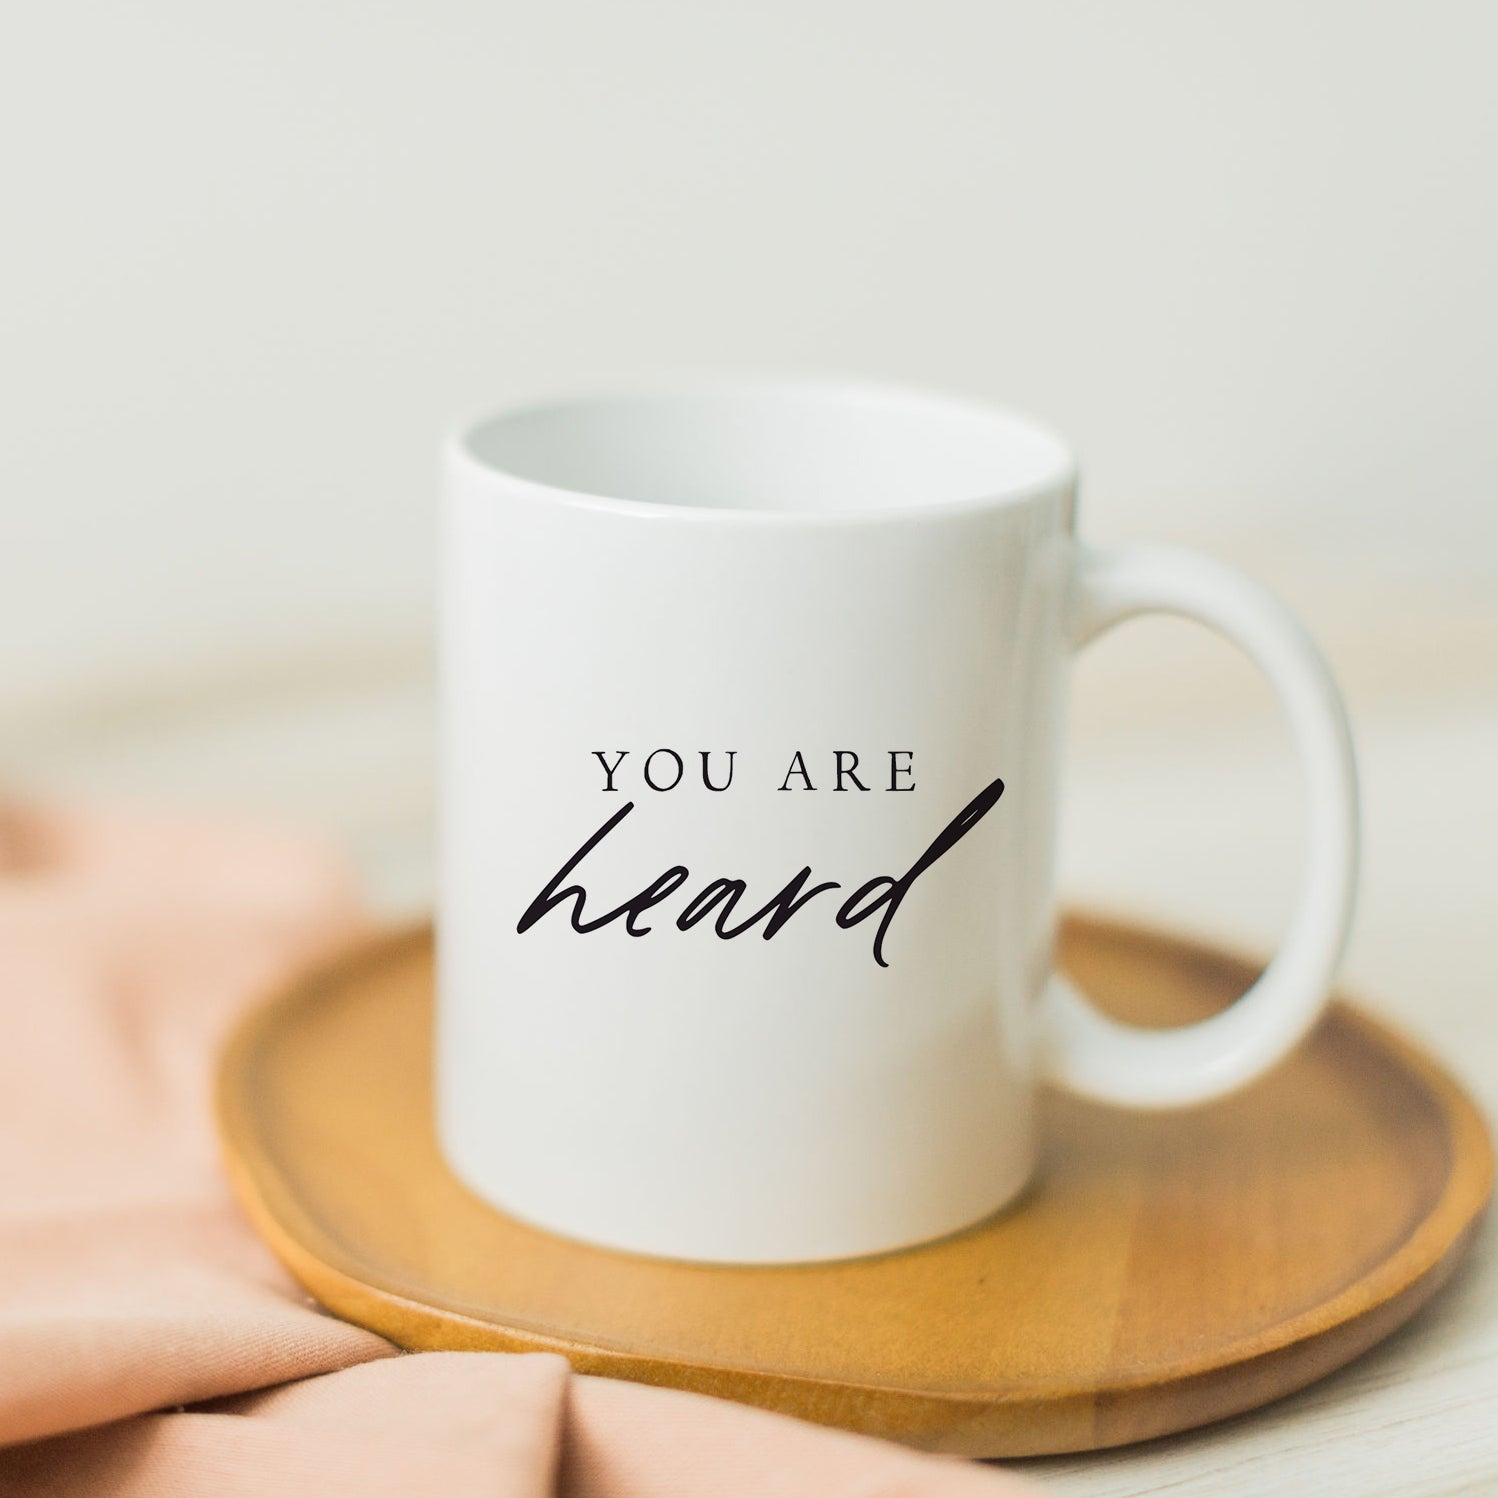 You Are Heard Mug